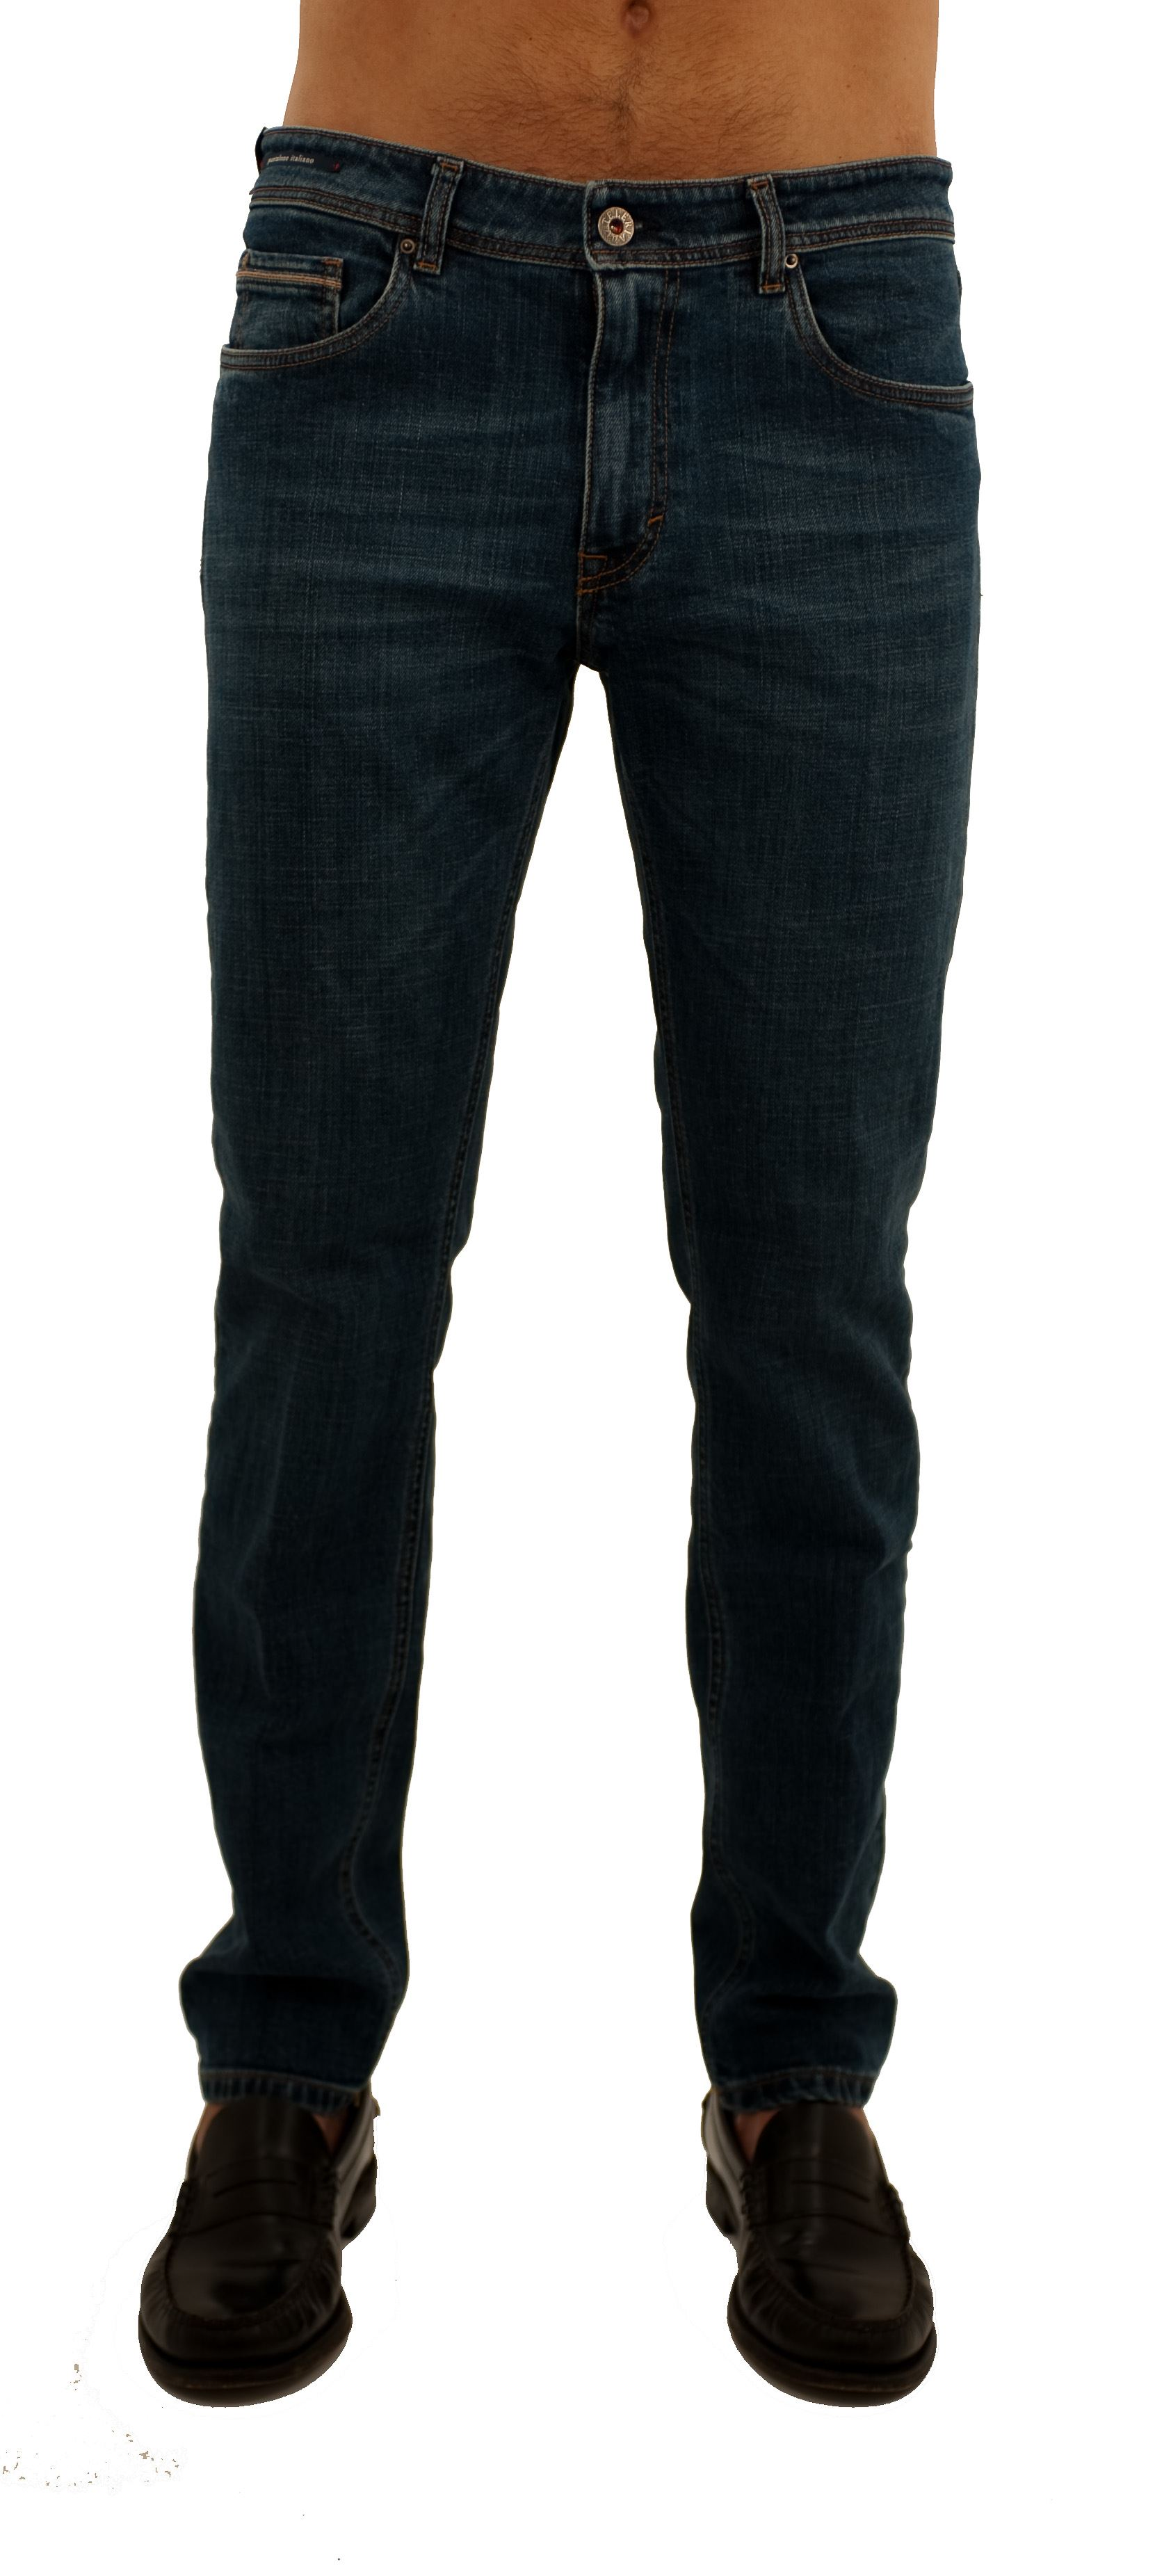 Picture of 5 pocket denim jeans